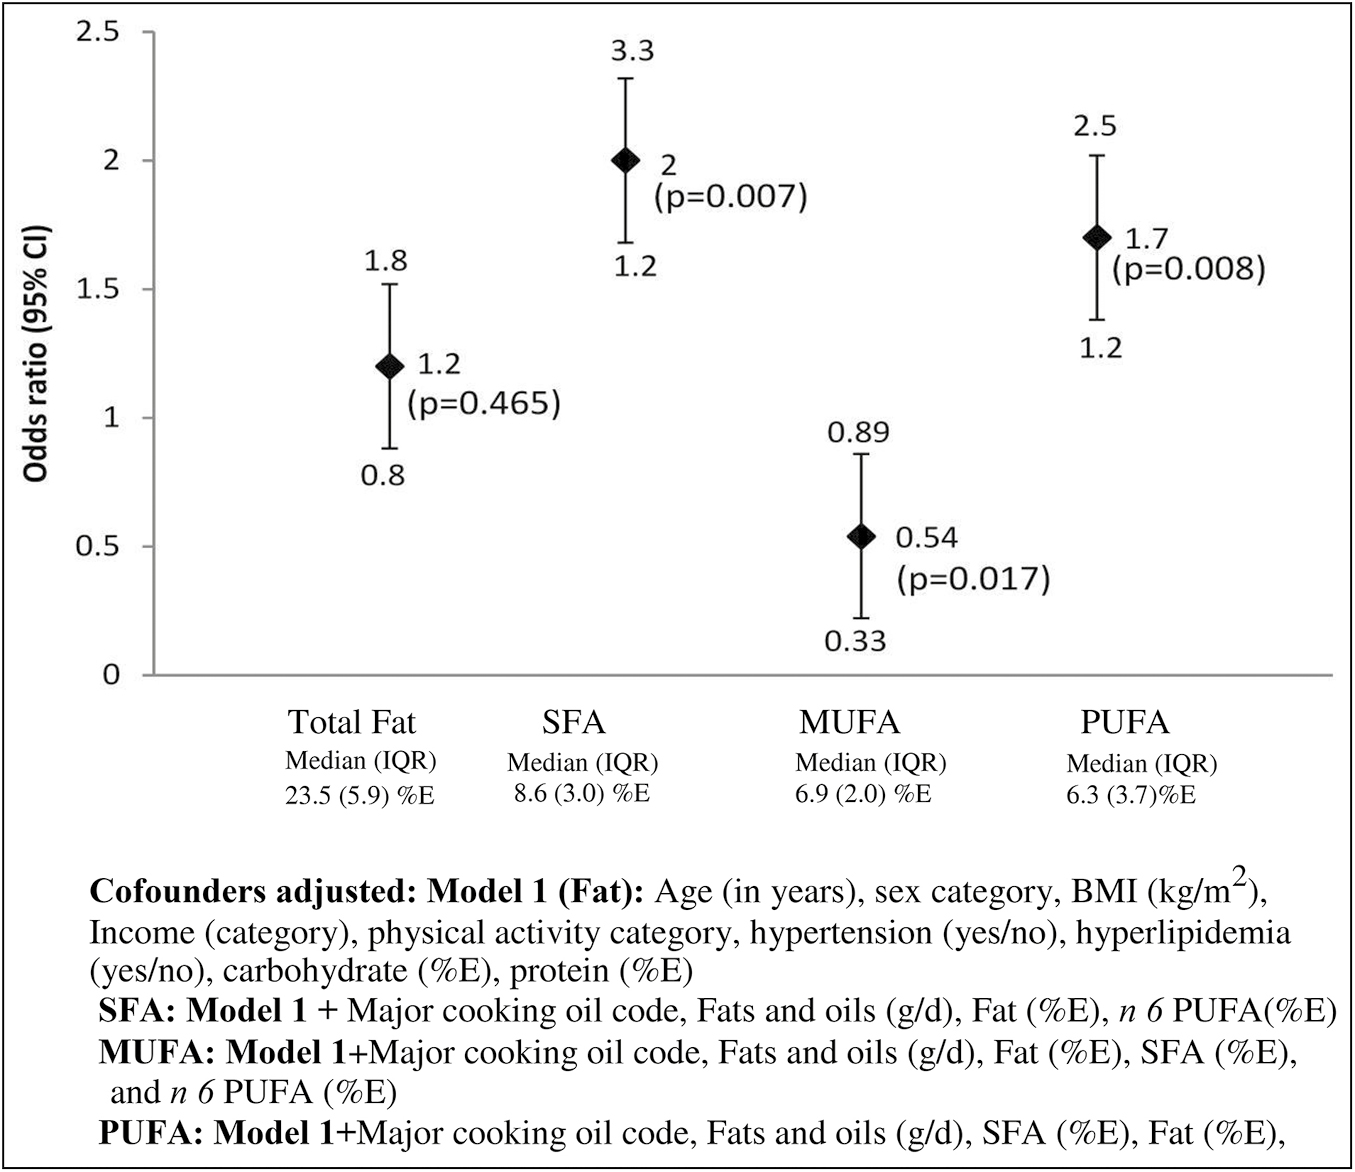 Figure 2: Association of fatty acids with the risk of type 2 diabetes in urban adult population of Chennai